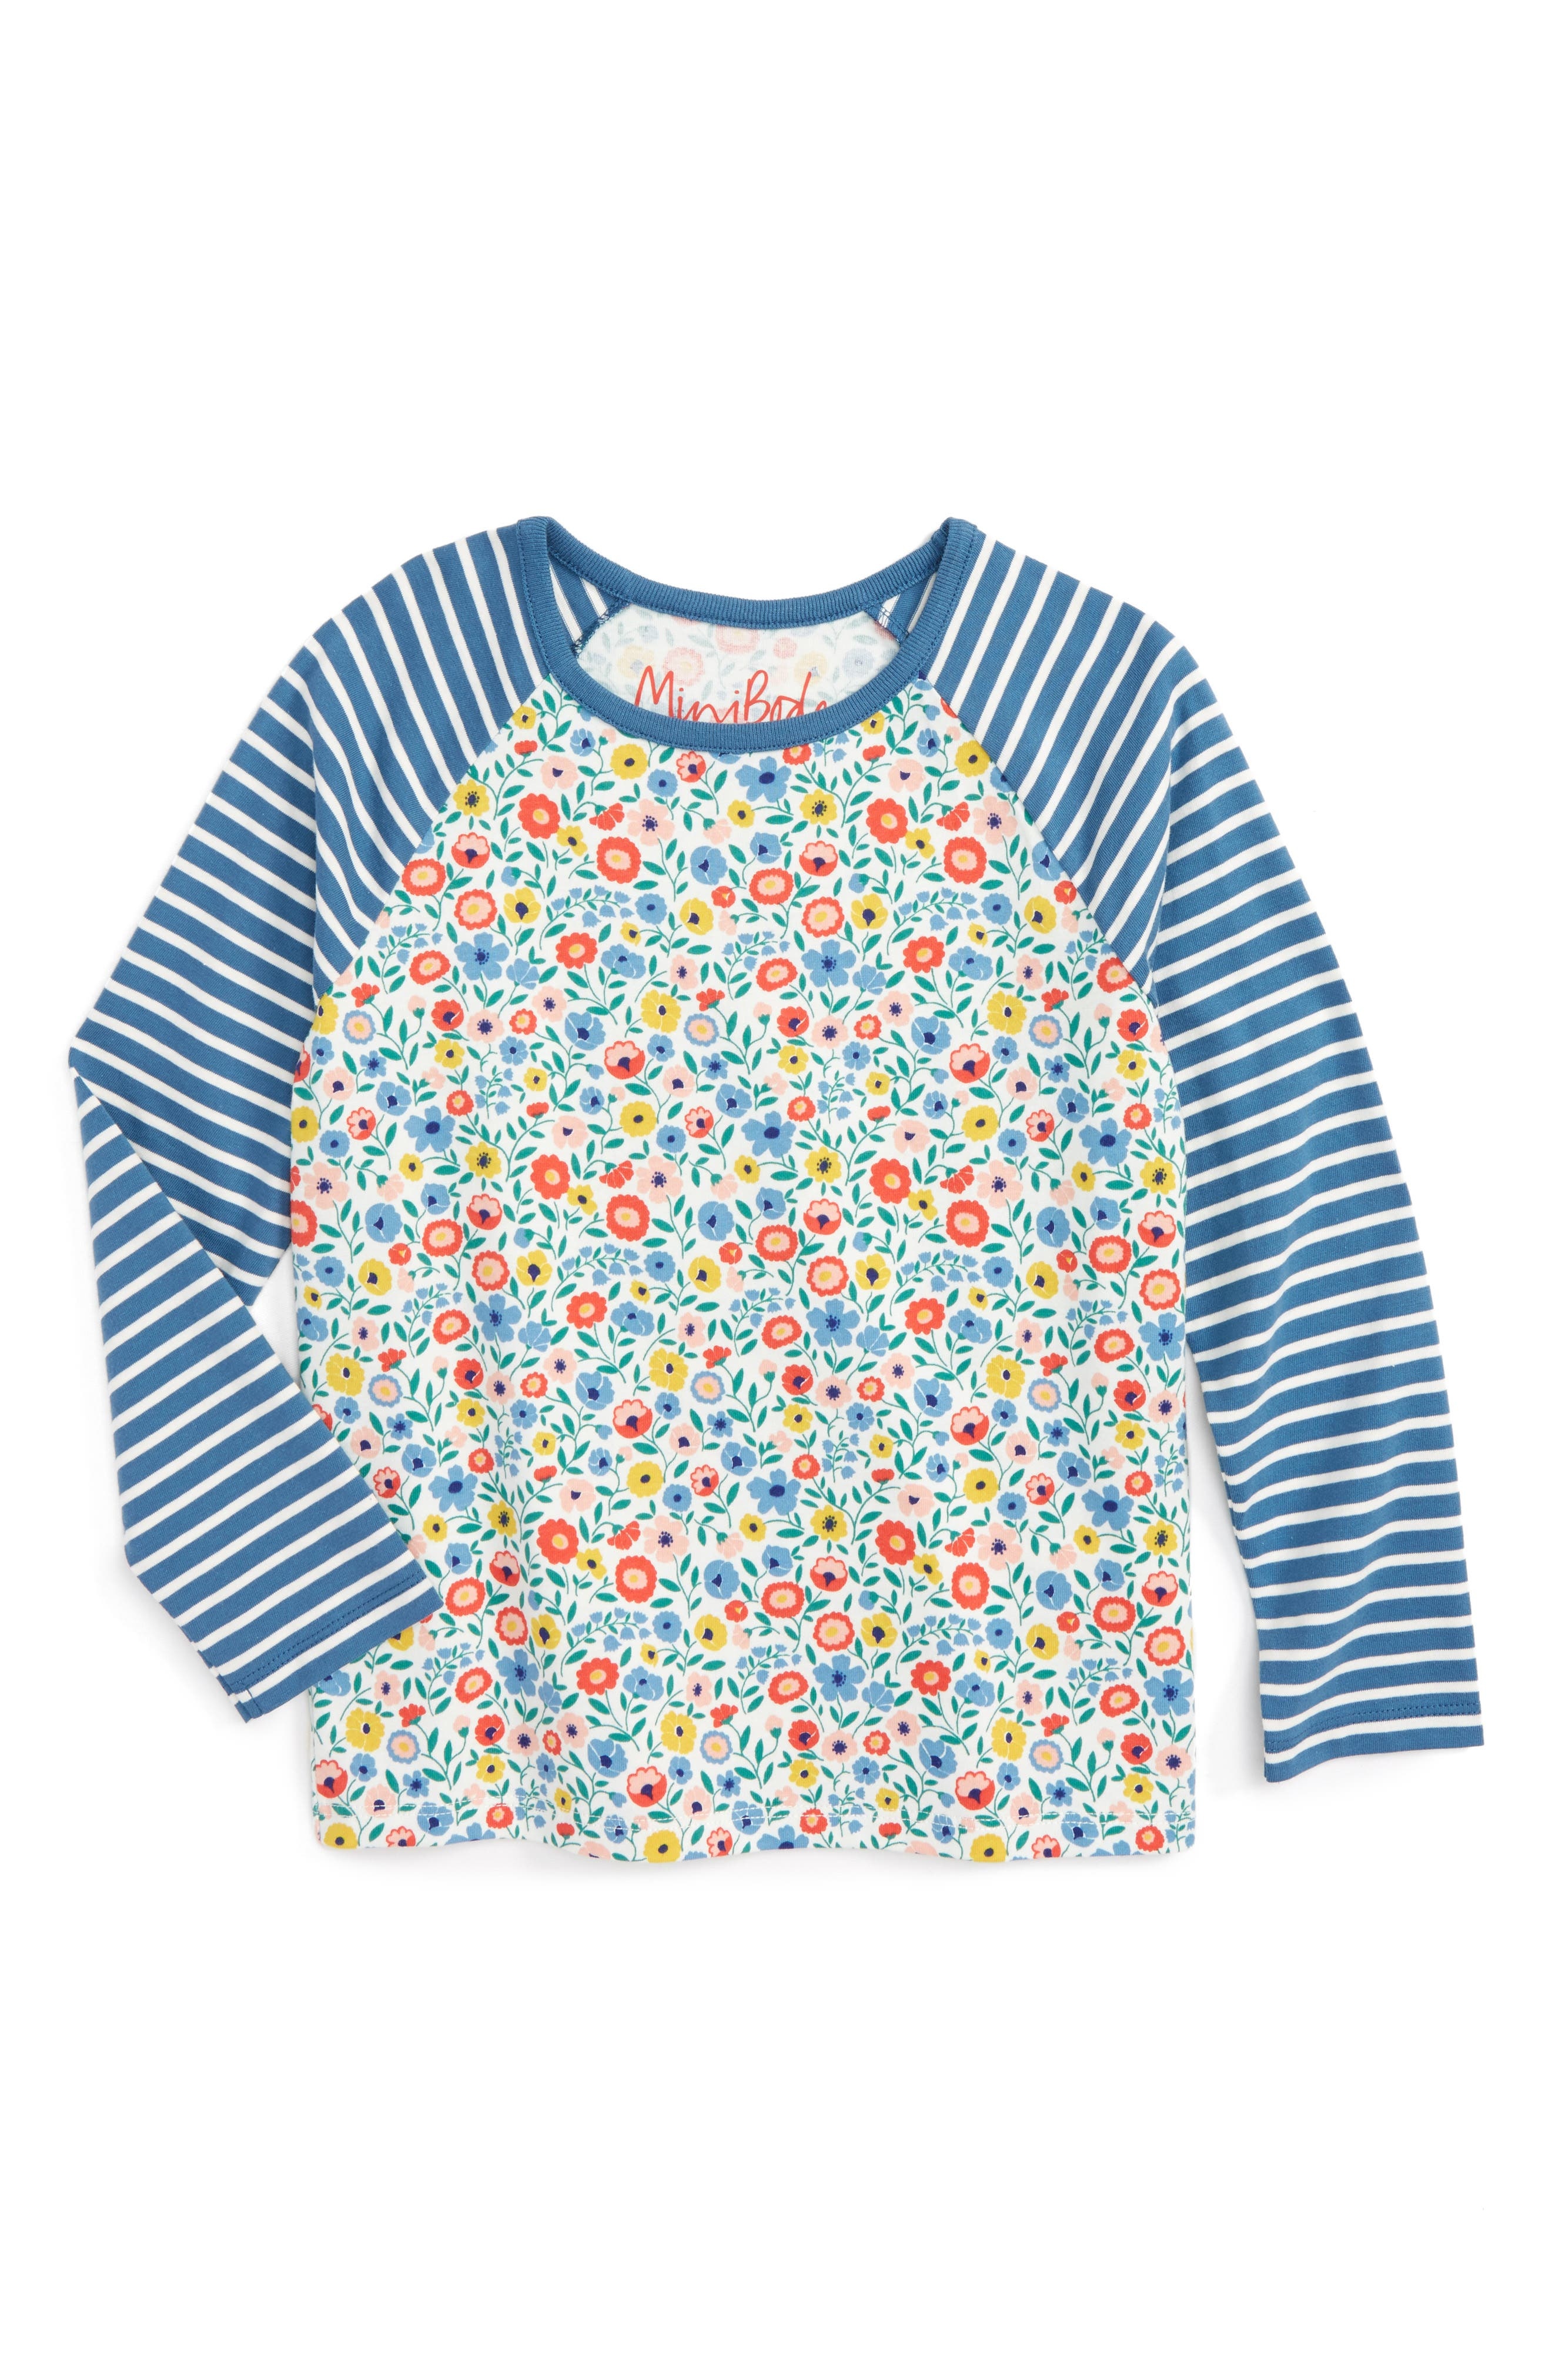 Hotchpotch Tee,                         Main,                         color, Pink Floral